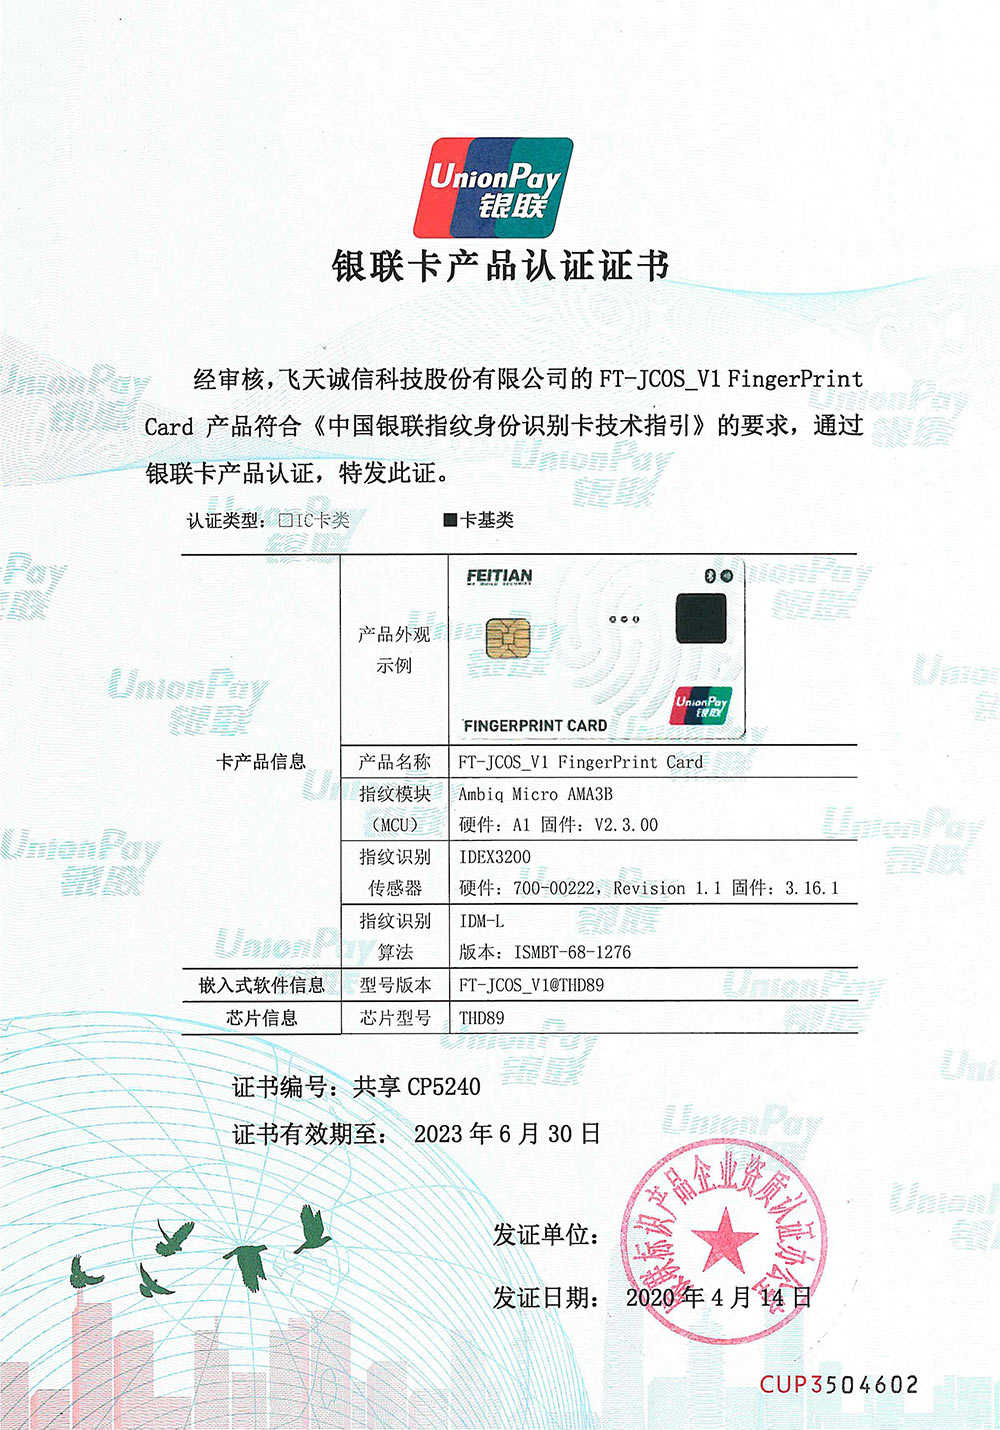 Fingerprint Payment Card UnionPay Product Certification